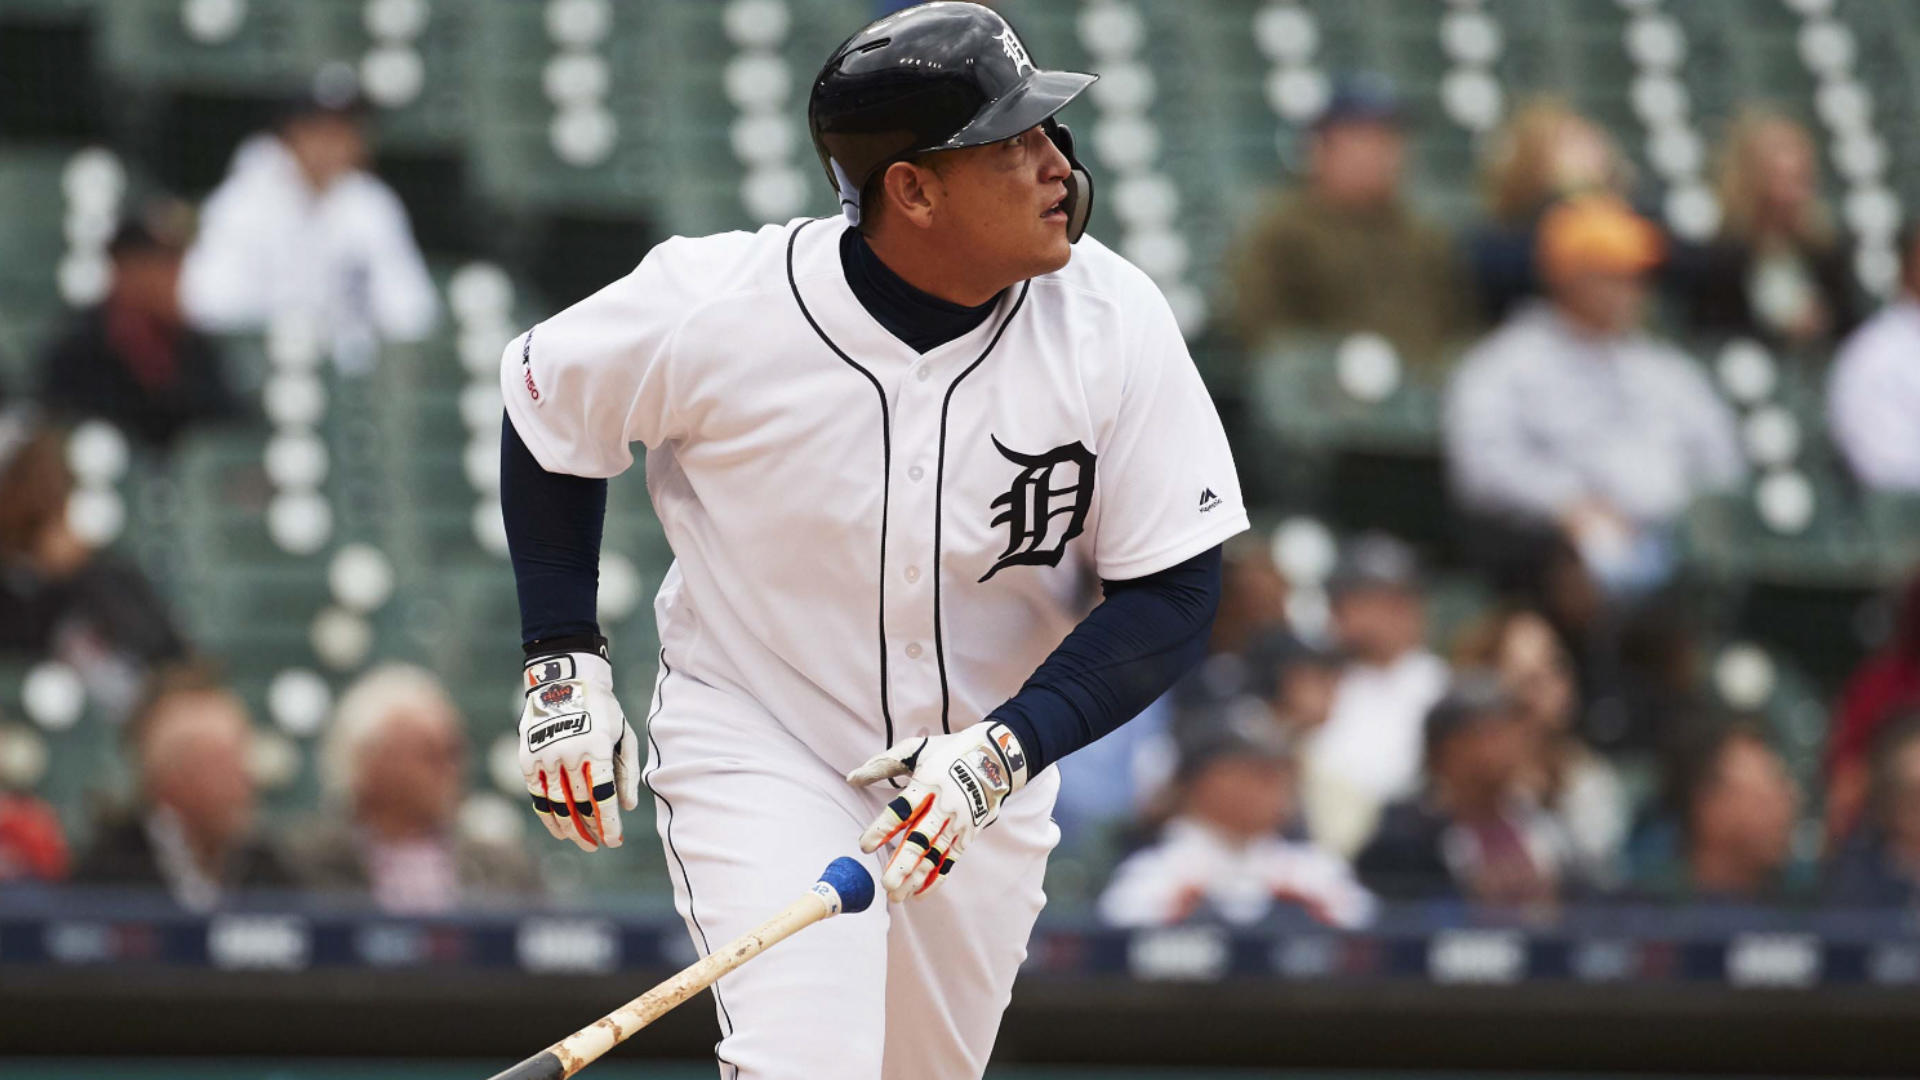 Fantasy Baseball Today Podcast: Over for Miguel Cabrera? Dropometer returns; Week 5 preview